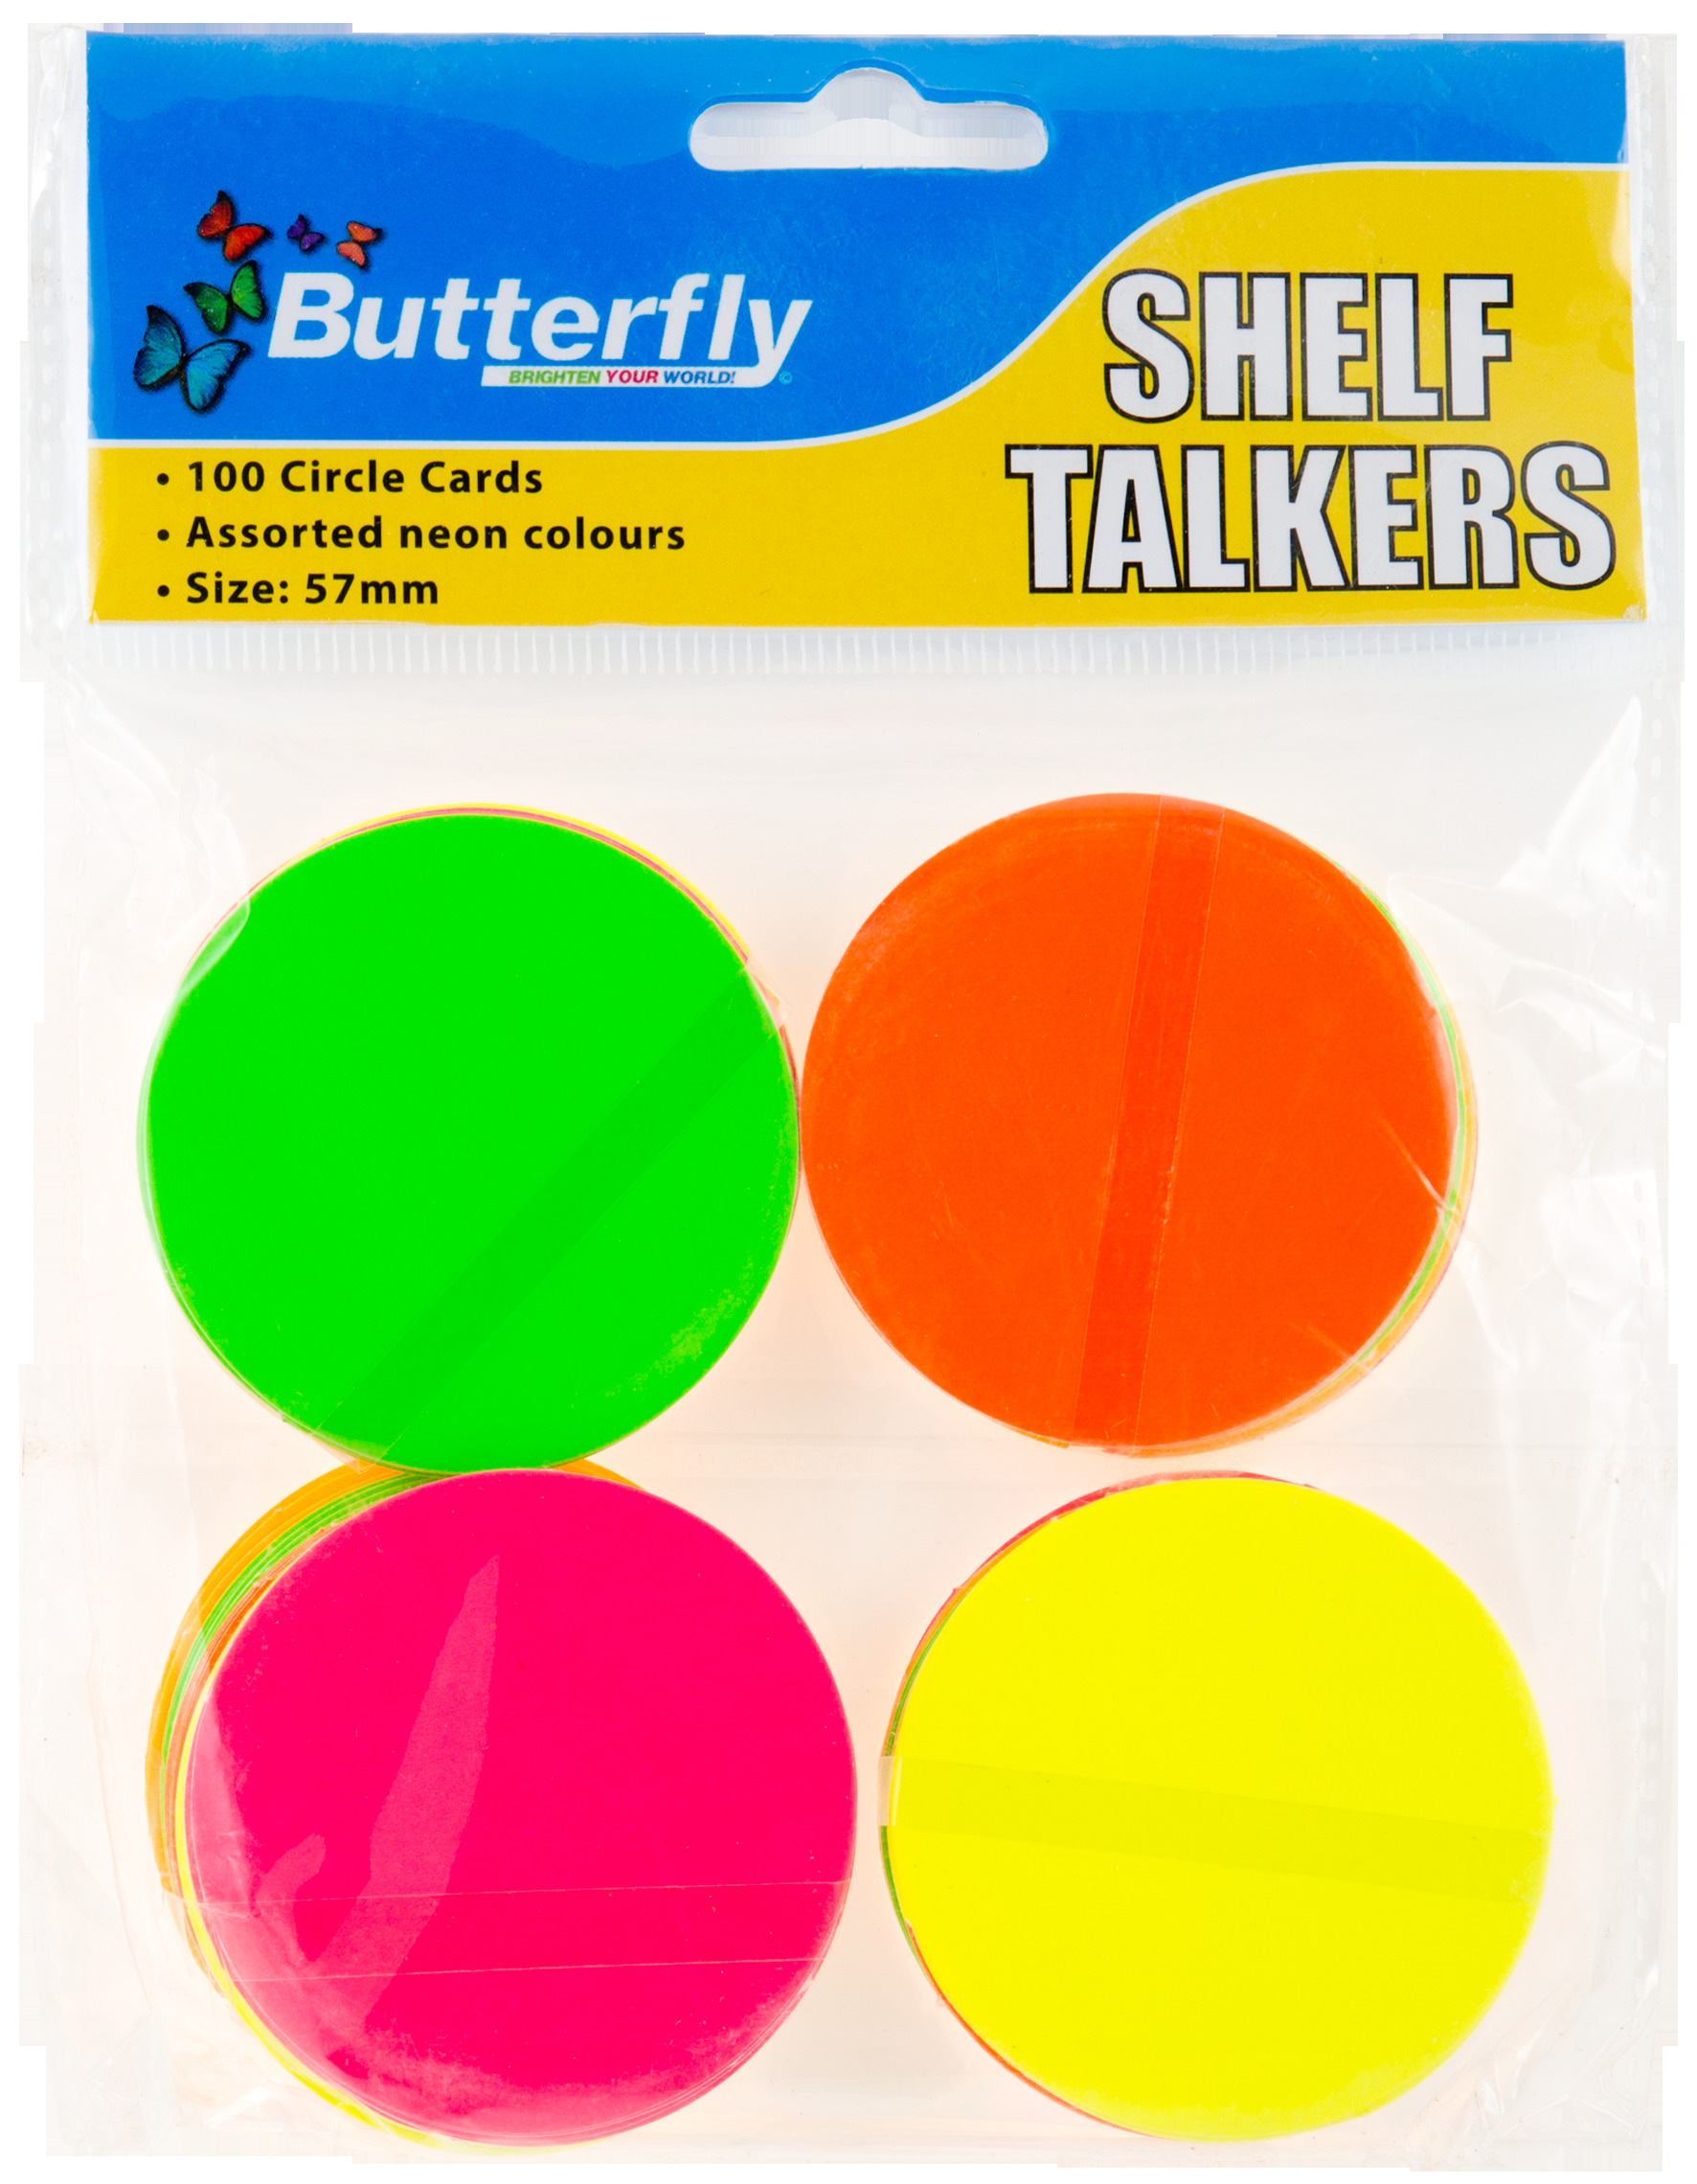 Shelf Talkers - Card Circles 100 (57mm)